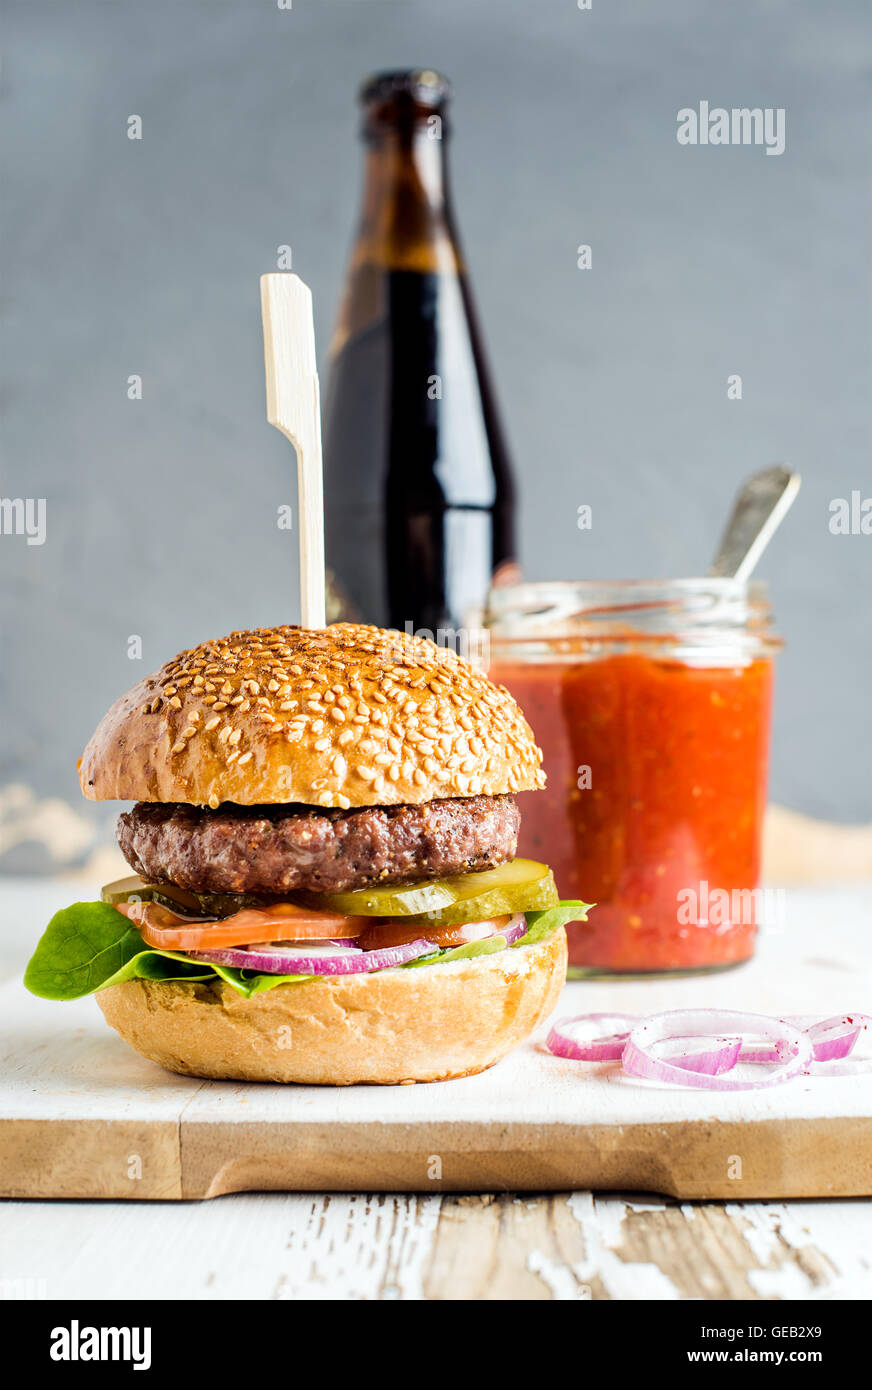 Fresh homemade burger on wooden serving board with spicy tomato sauce and bottle of dark beer, white background - Stock Image